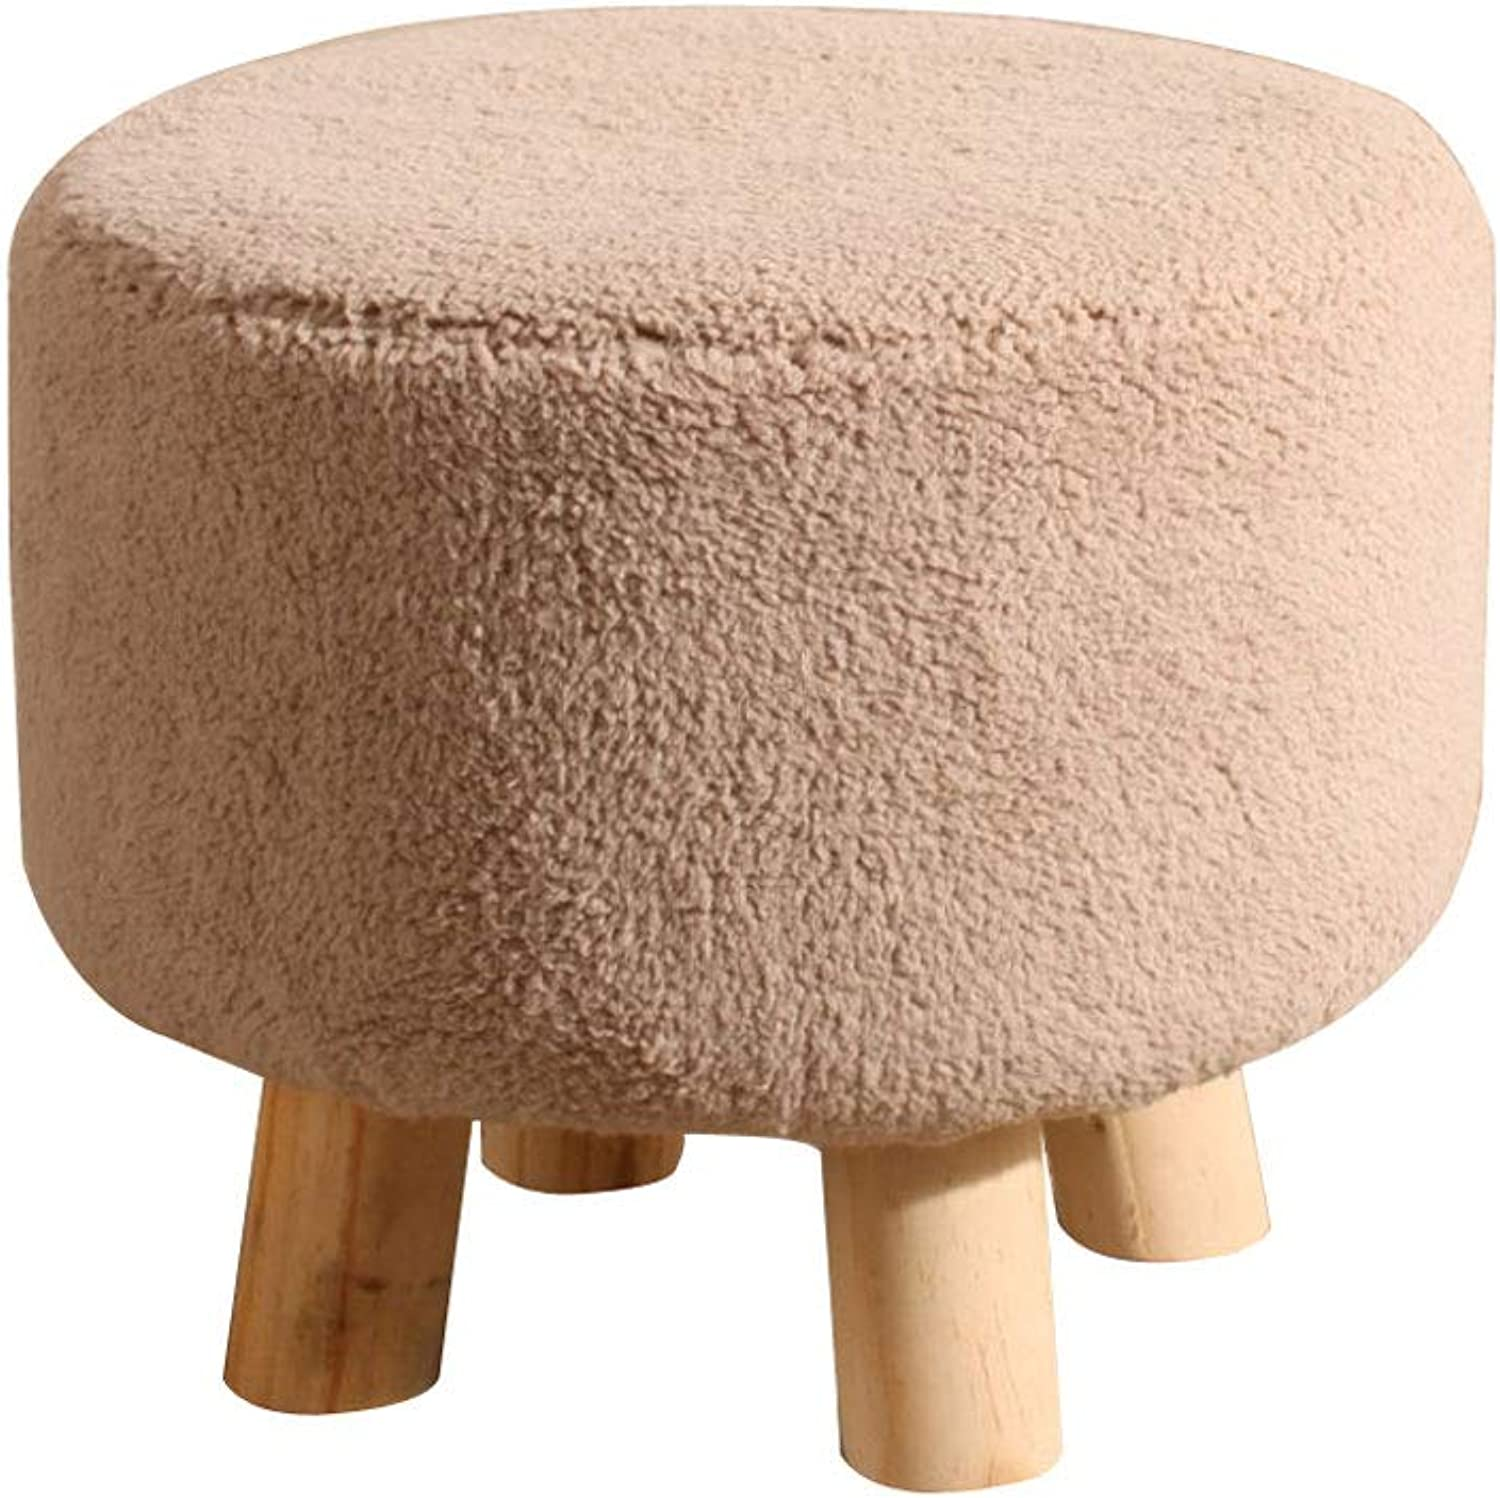 Wooden Footstool, Solid Osman Stool with Soft Cushion for Living Room, Bedroom (color   A, Size   32x32x28cm(13x13x11))